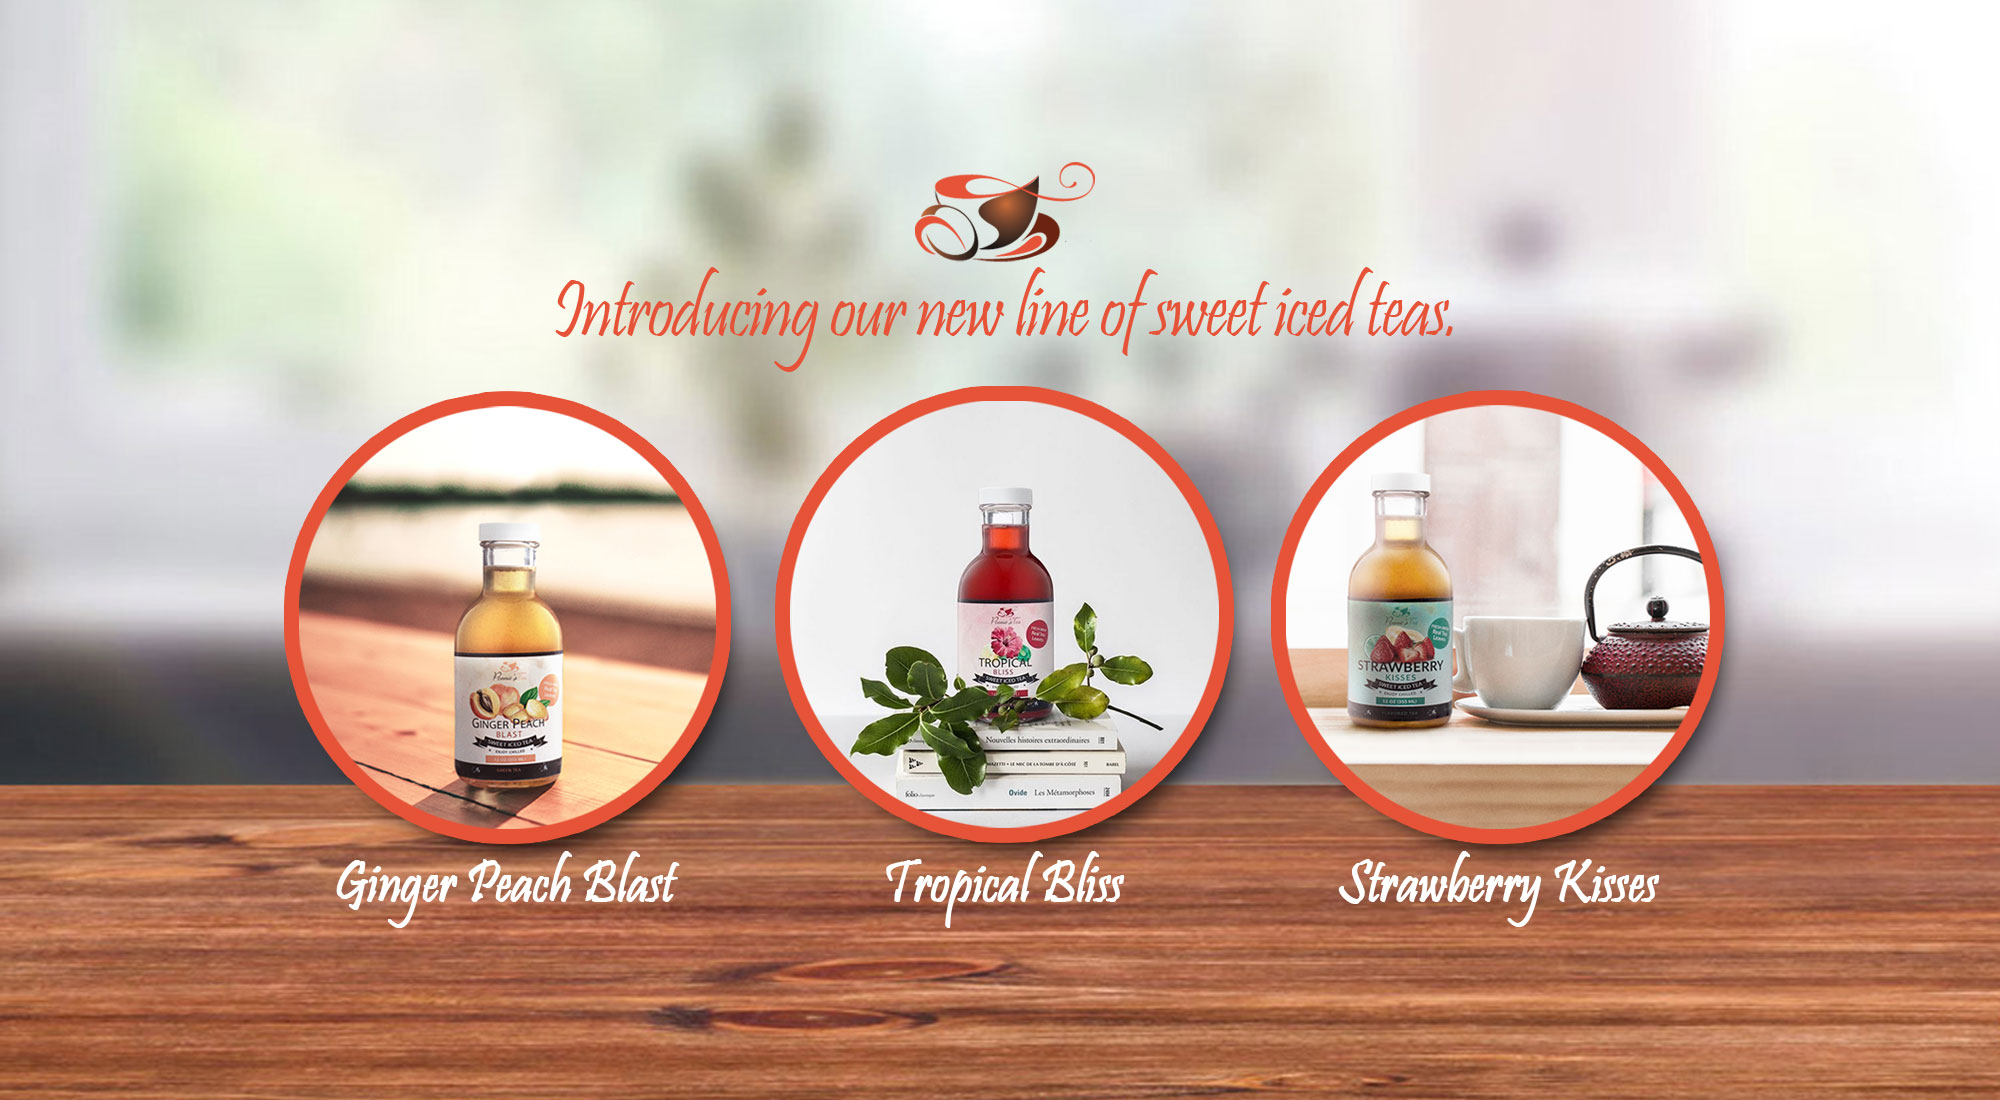 Introducing our new line of sweet iced teas.